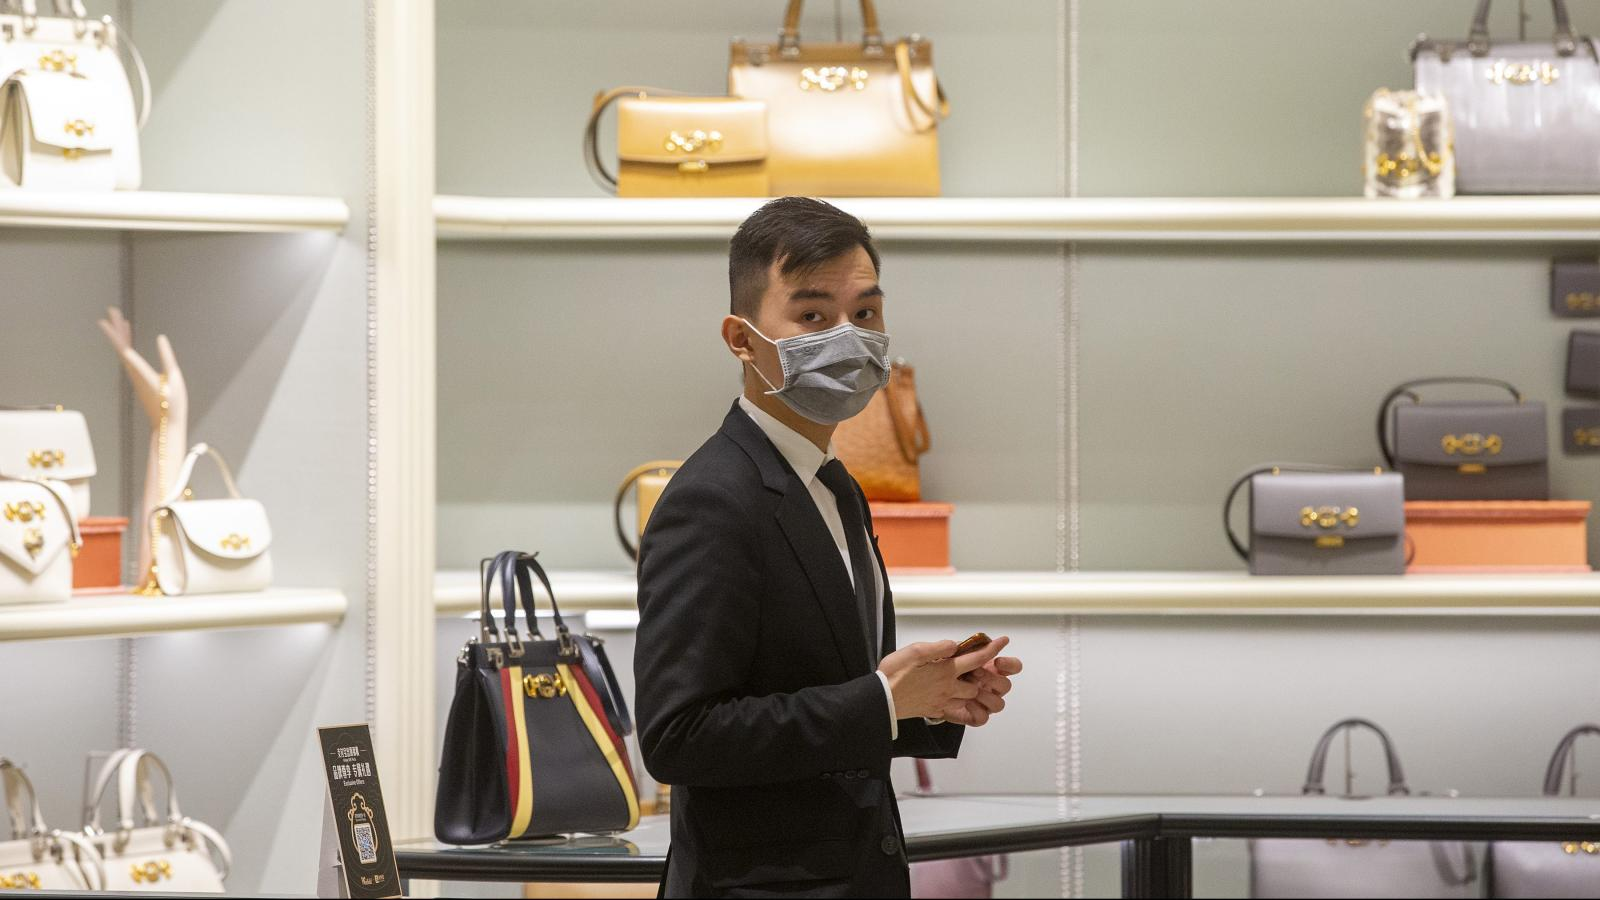 GettyImages 1203100298 e1581090716336 – Luxury During Pandemic: Tectonic Shifts in the Fashion Industry